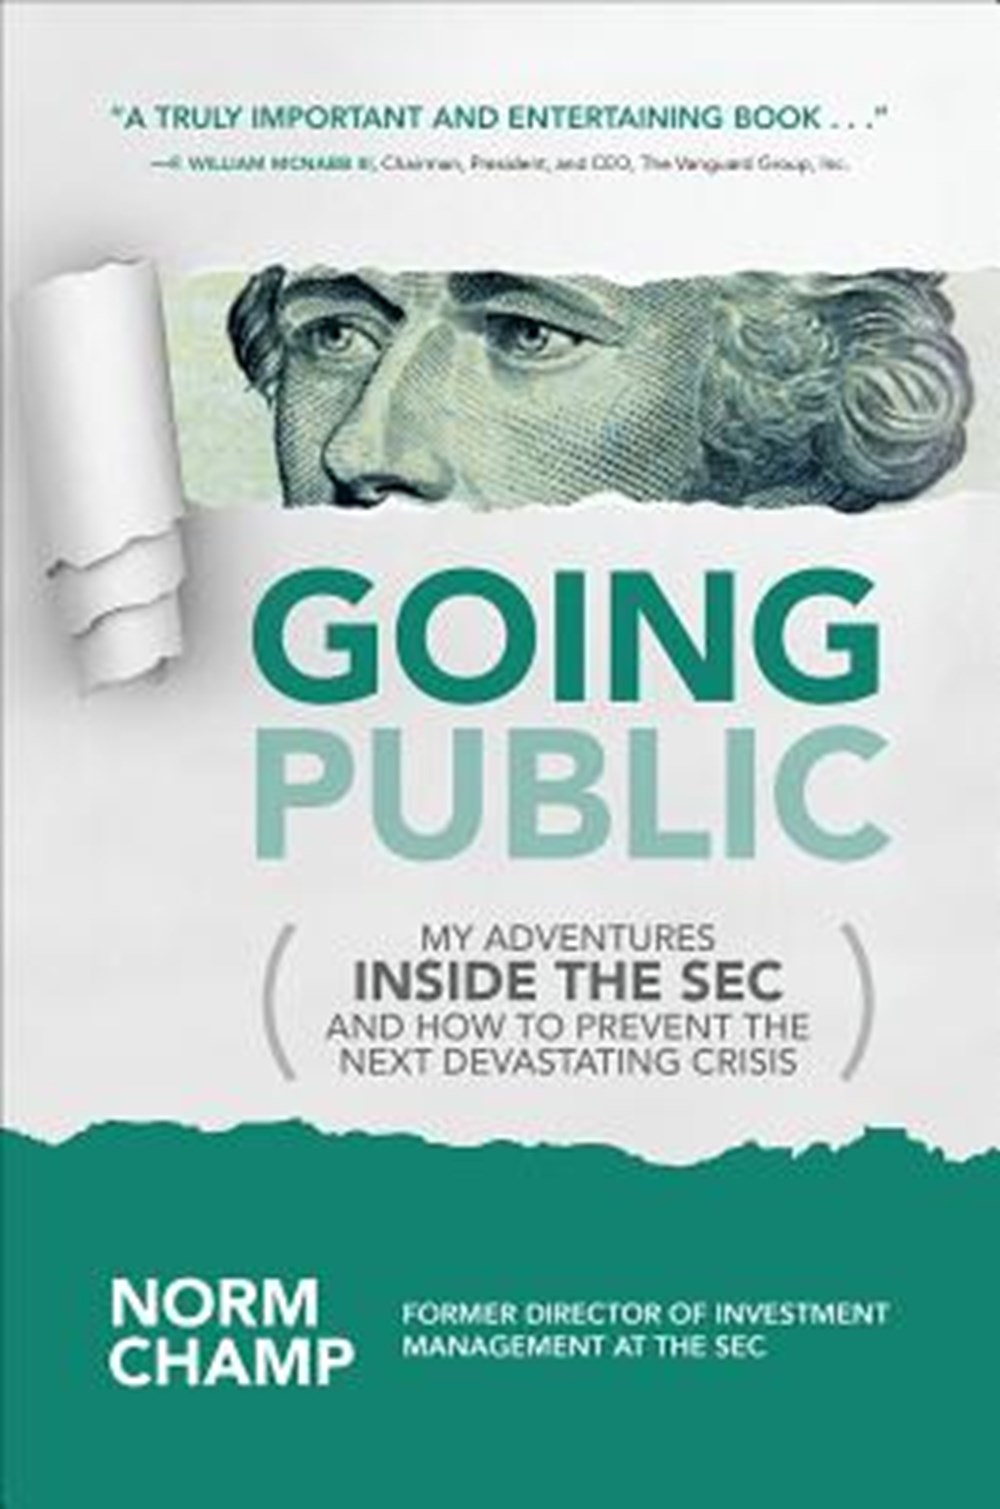 Going Public My Adventures Inside the SEC and How to Prevent the Next Devastating Crisis